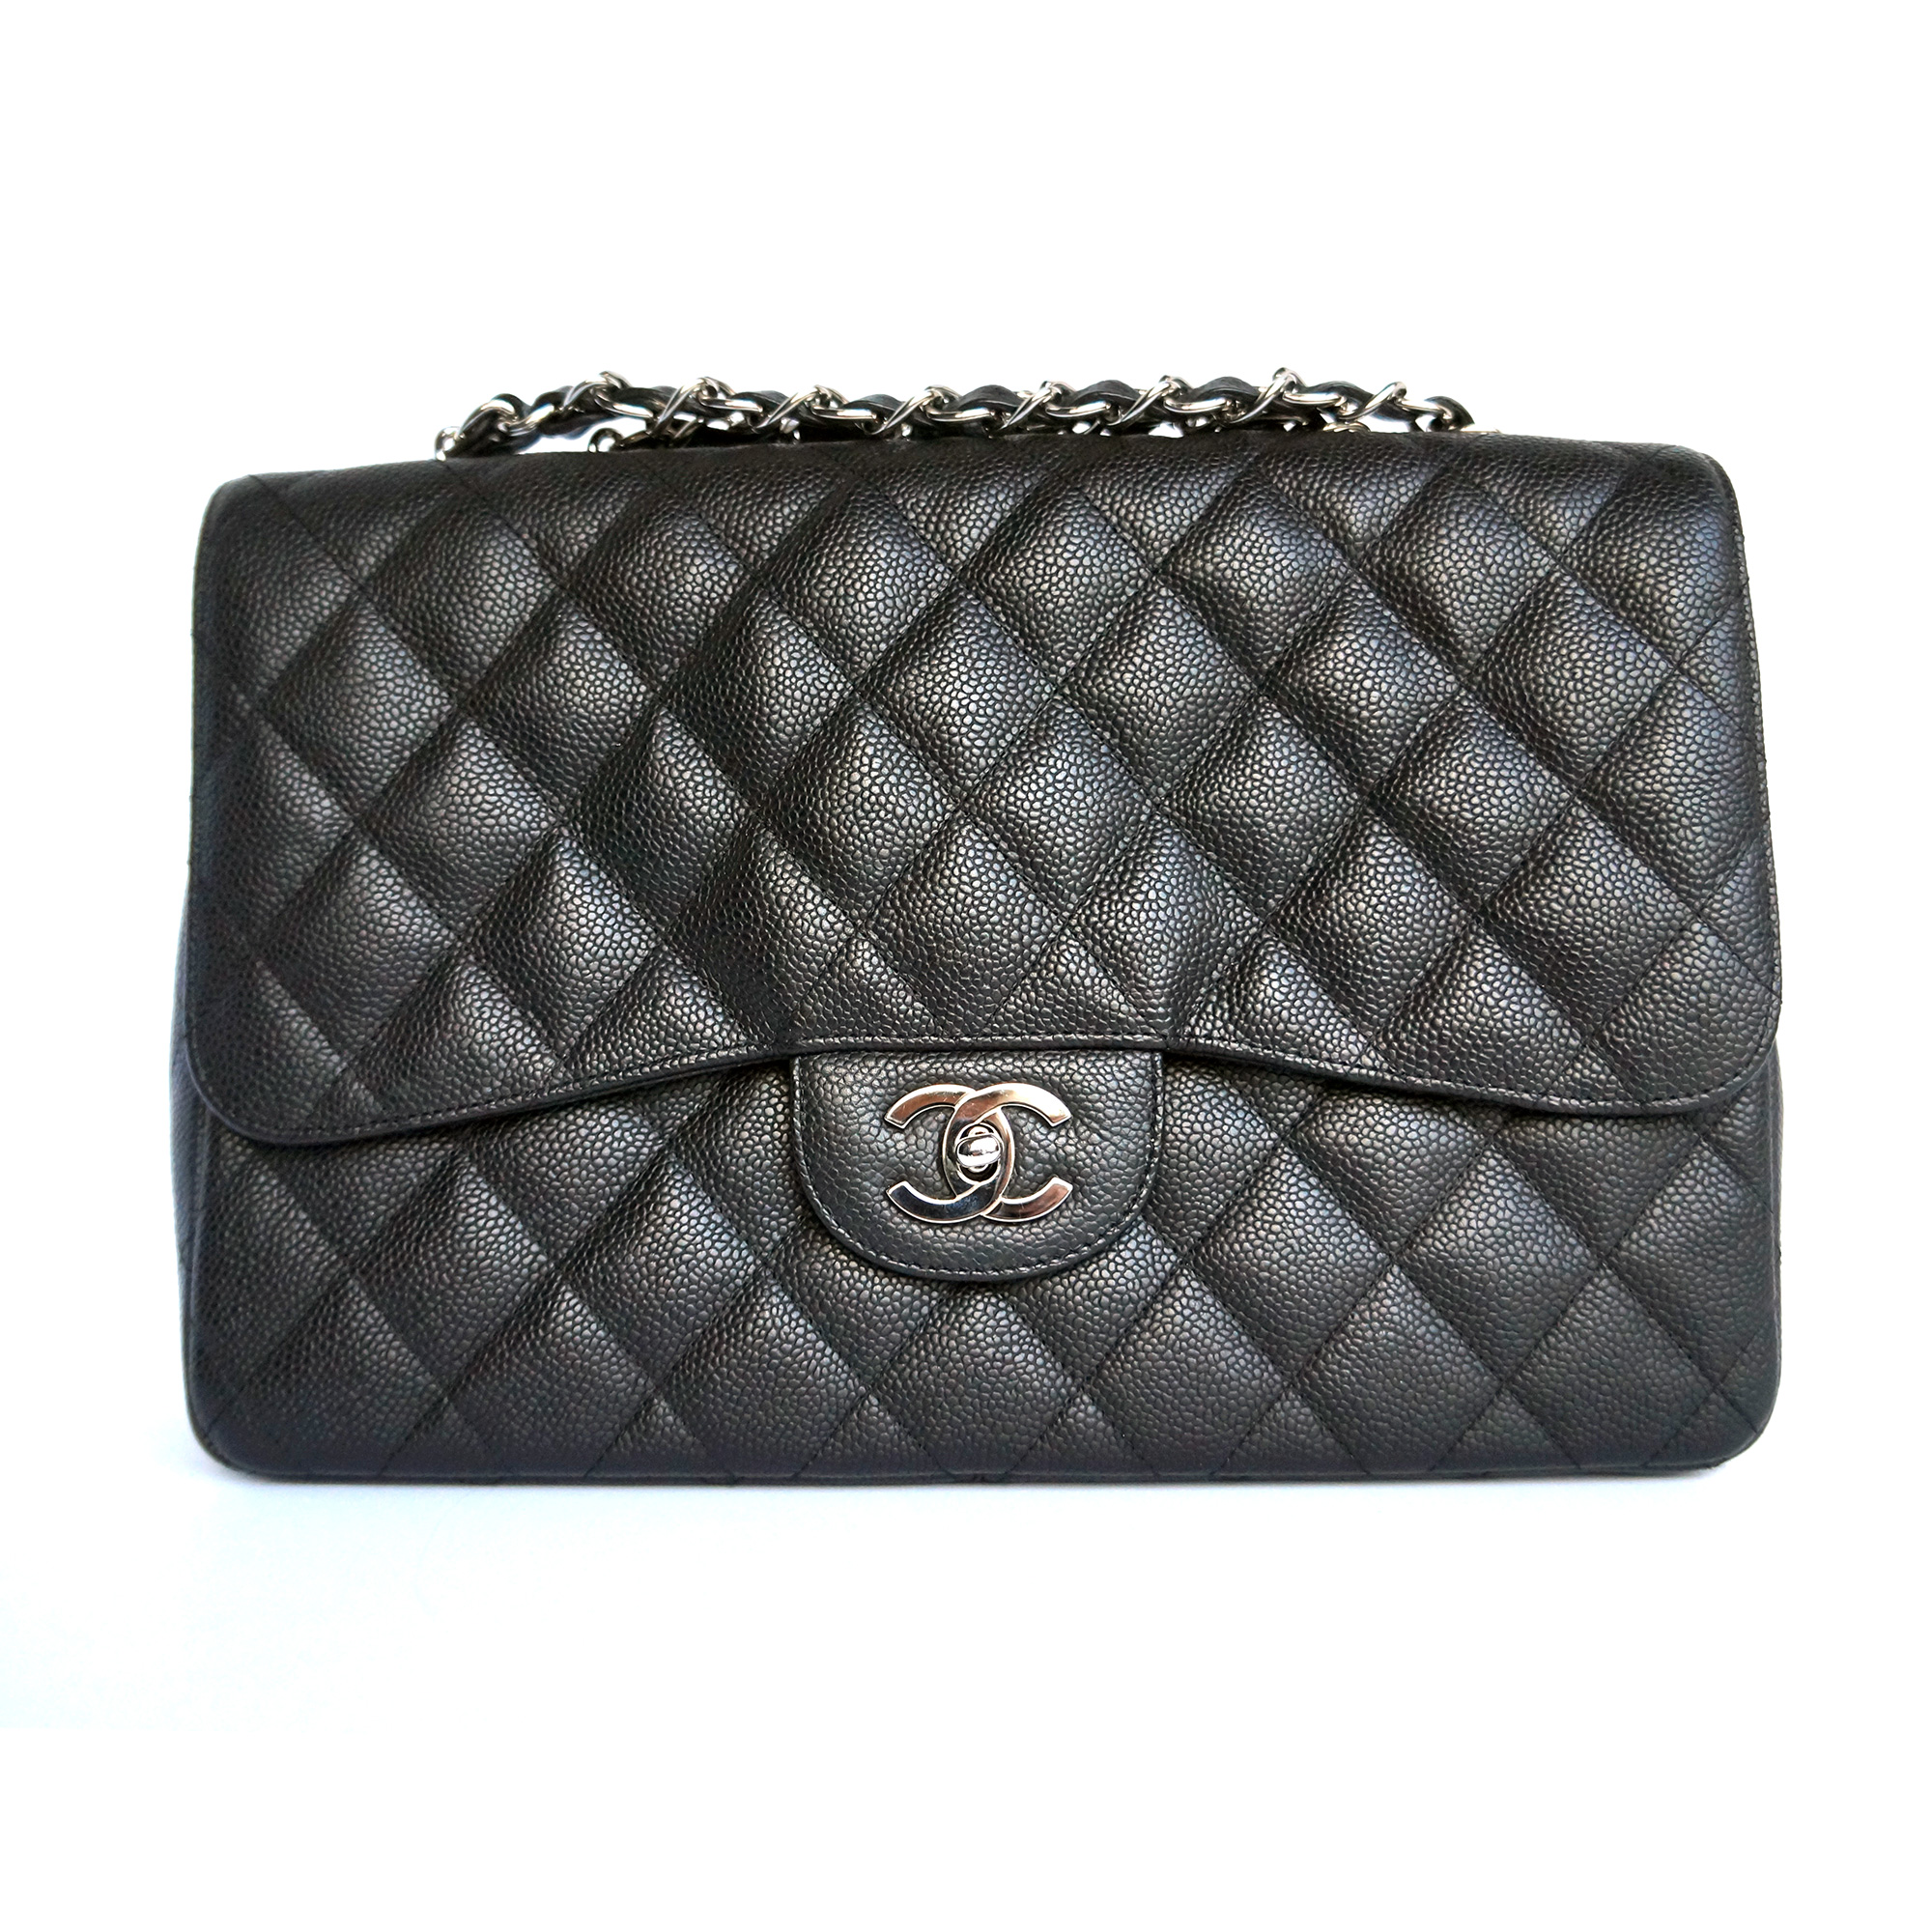 Chanel Jumbo Flap Bag Black Caviar Leather